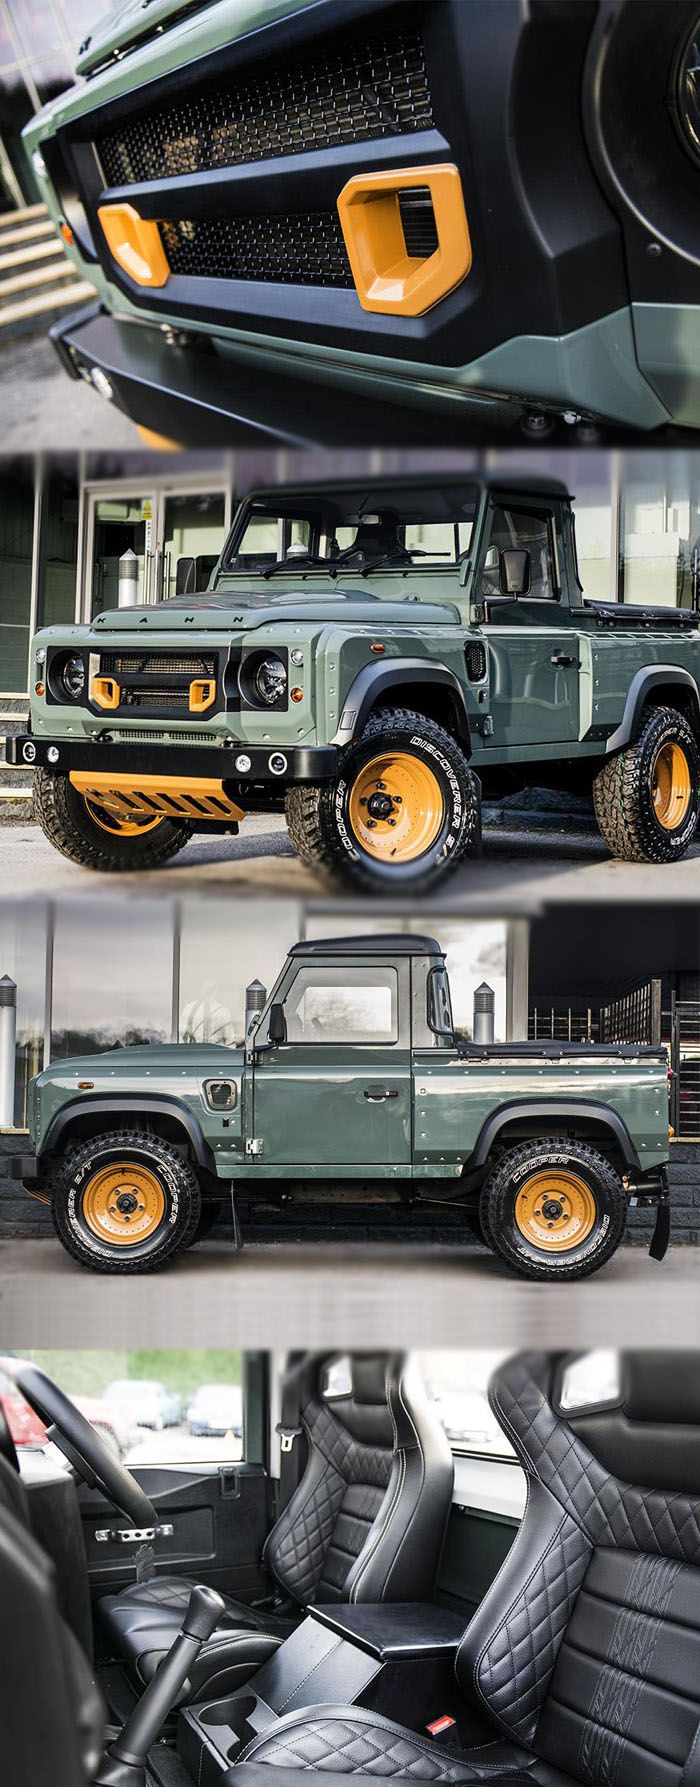 Kahn design customised land rover defender pick up